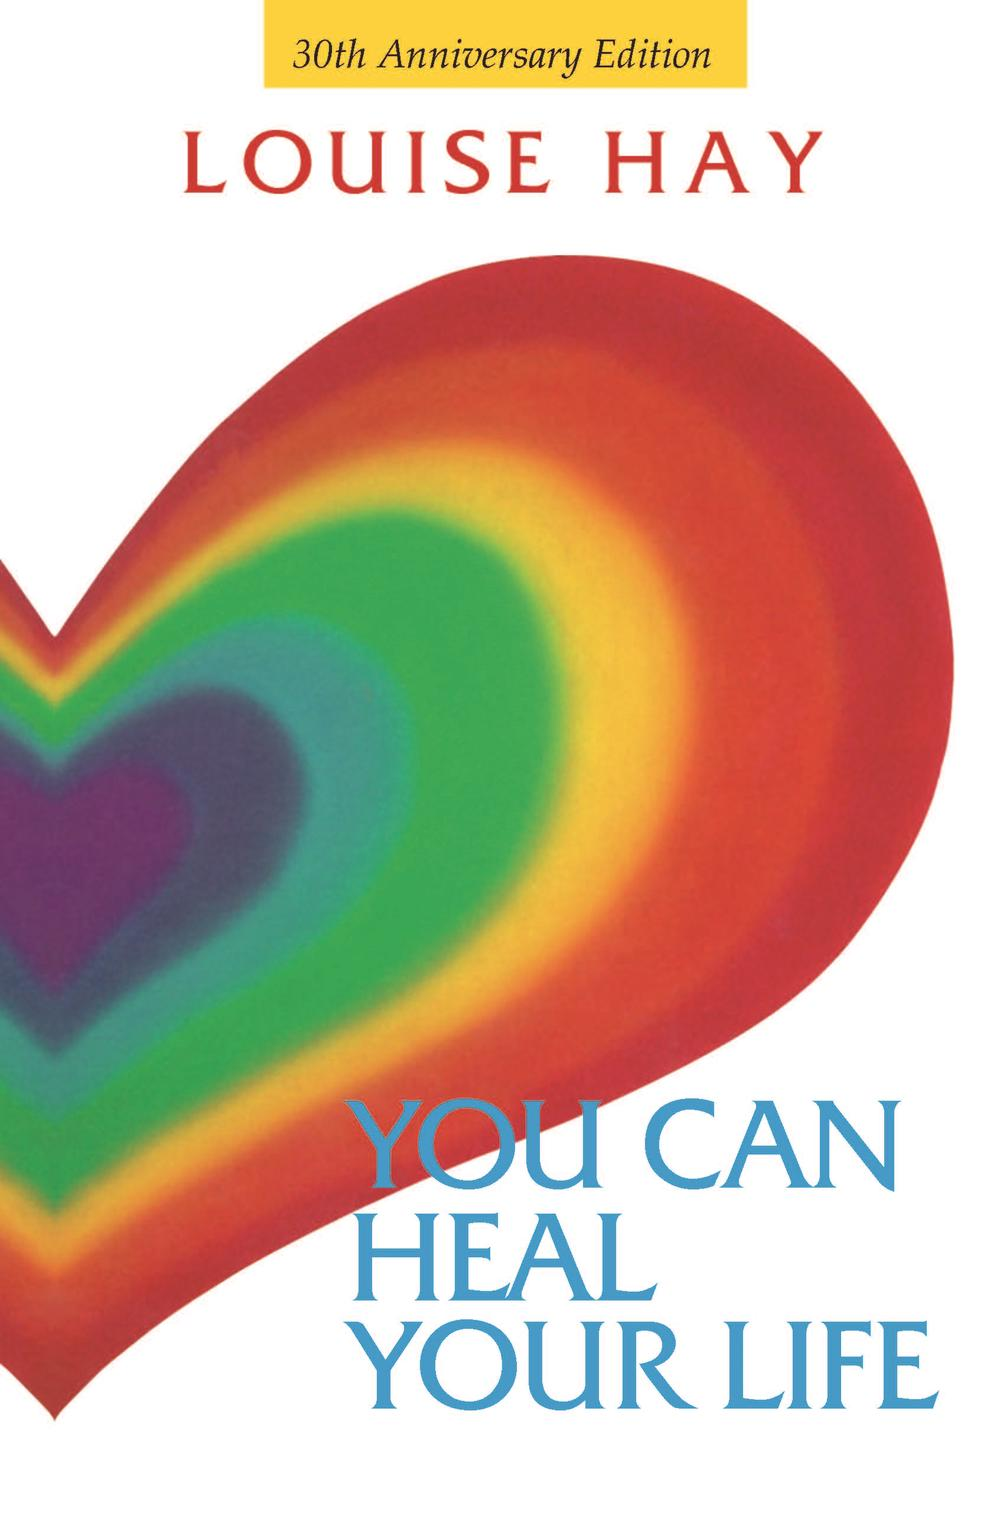 You Can Heal Your Life 30th Anniversary Edition by Louise Hay, ISBN: 9781401950842